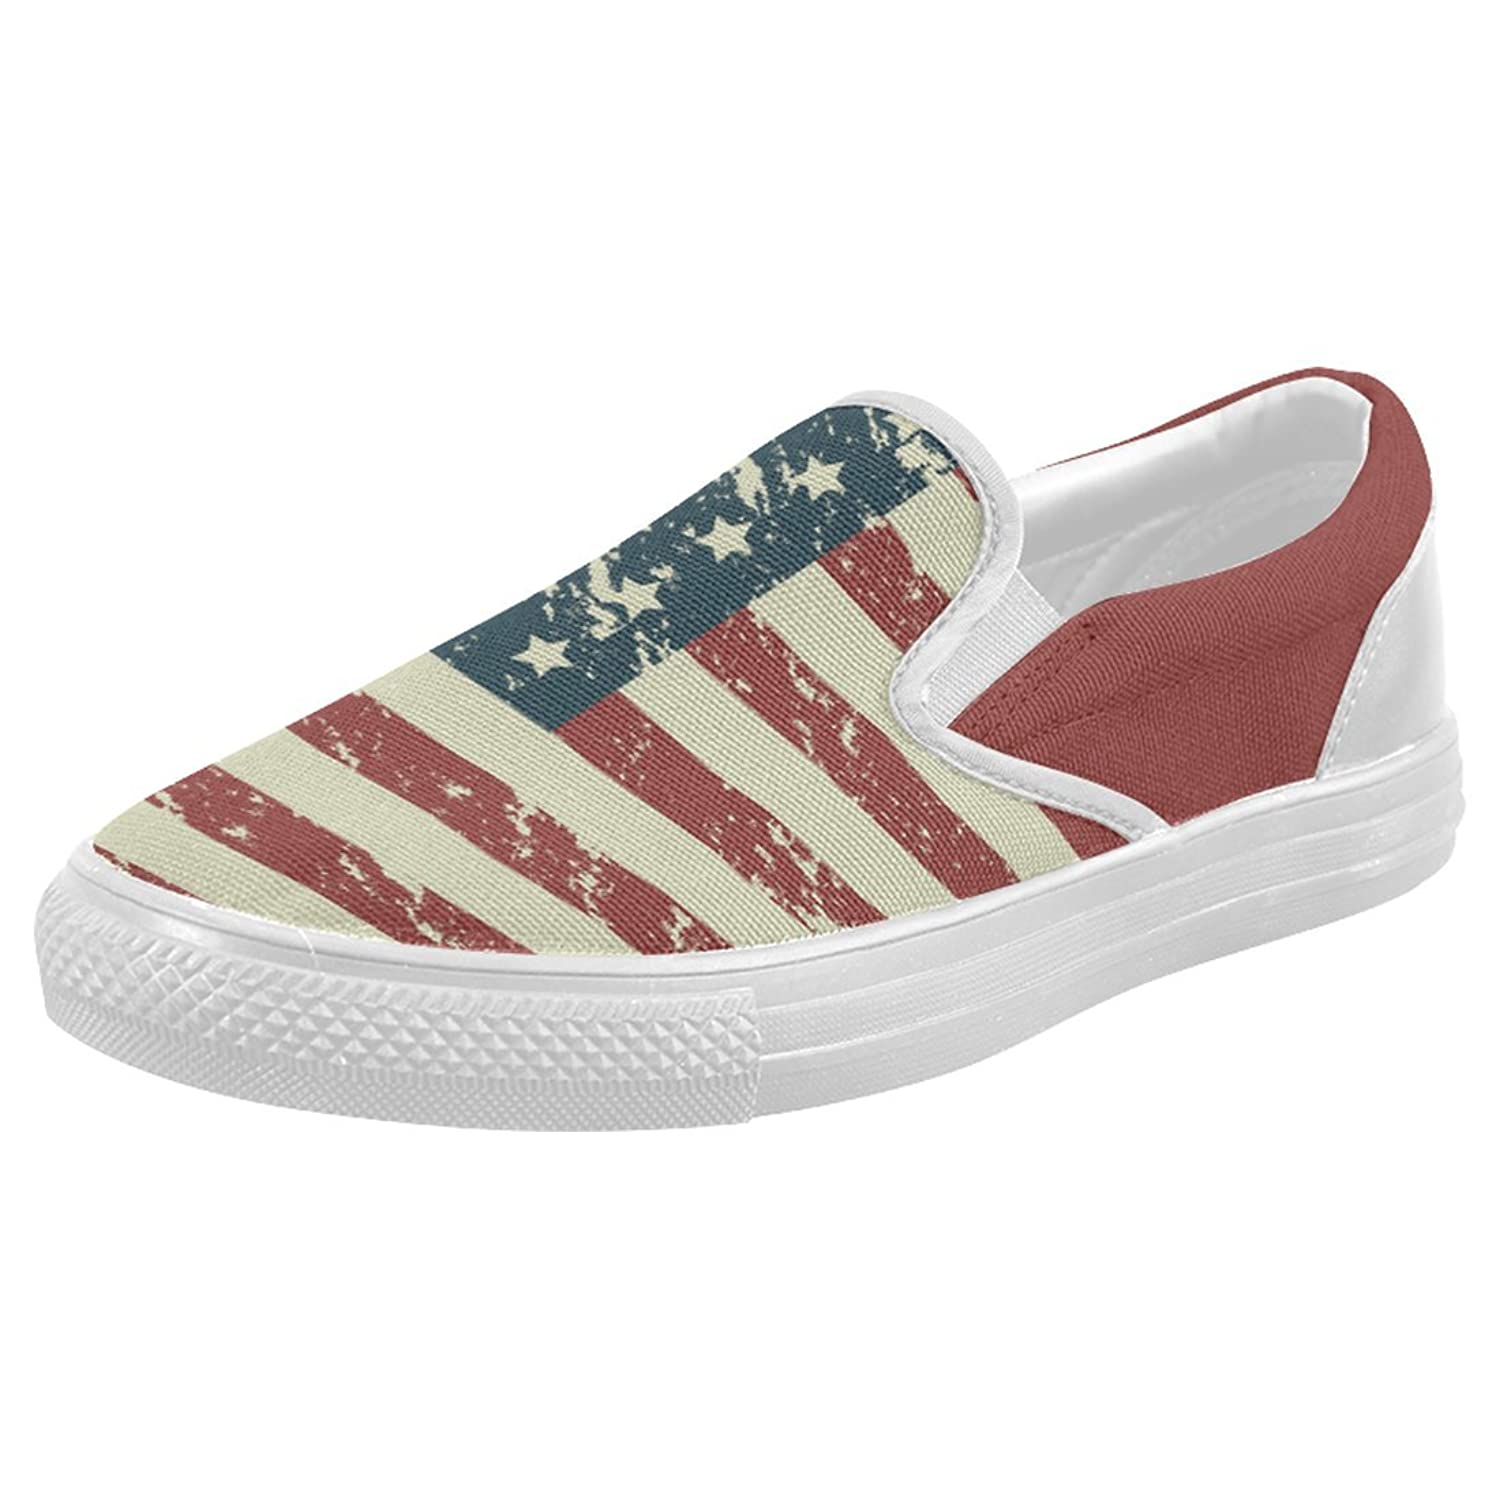 9ad7b7bf980d46 InterestPrint American Flag Casual Slip-on Canvas Women s Fashion Sneakers  Shoes durable service